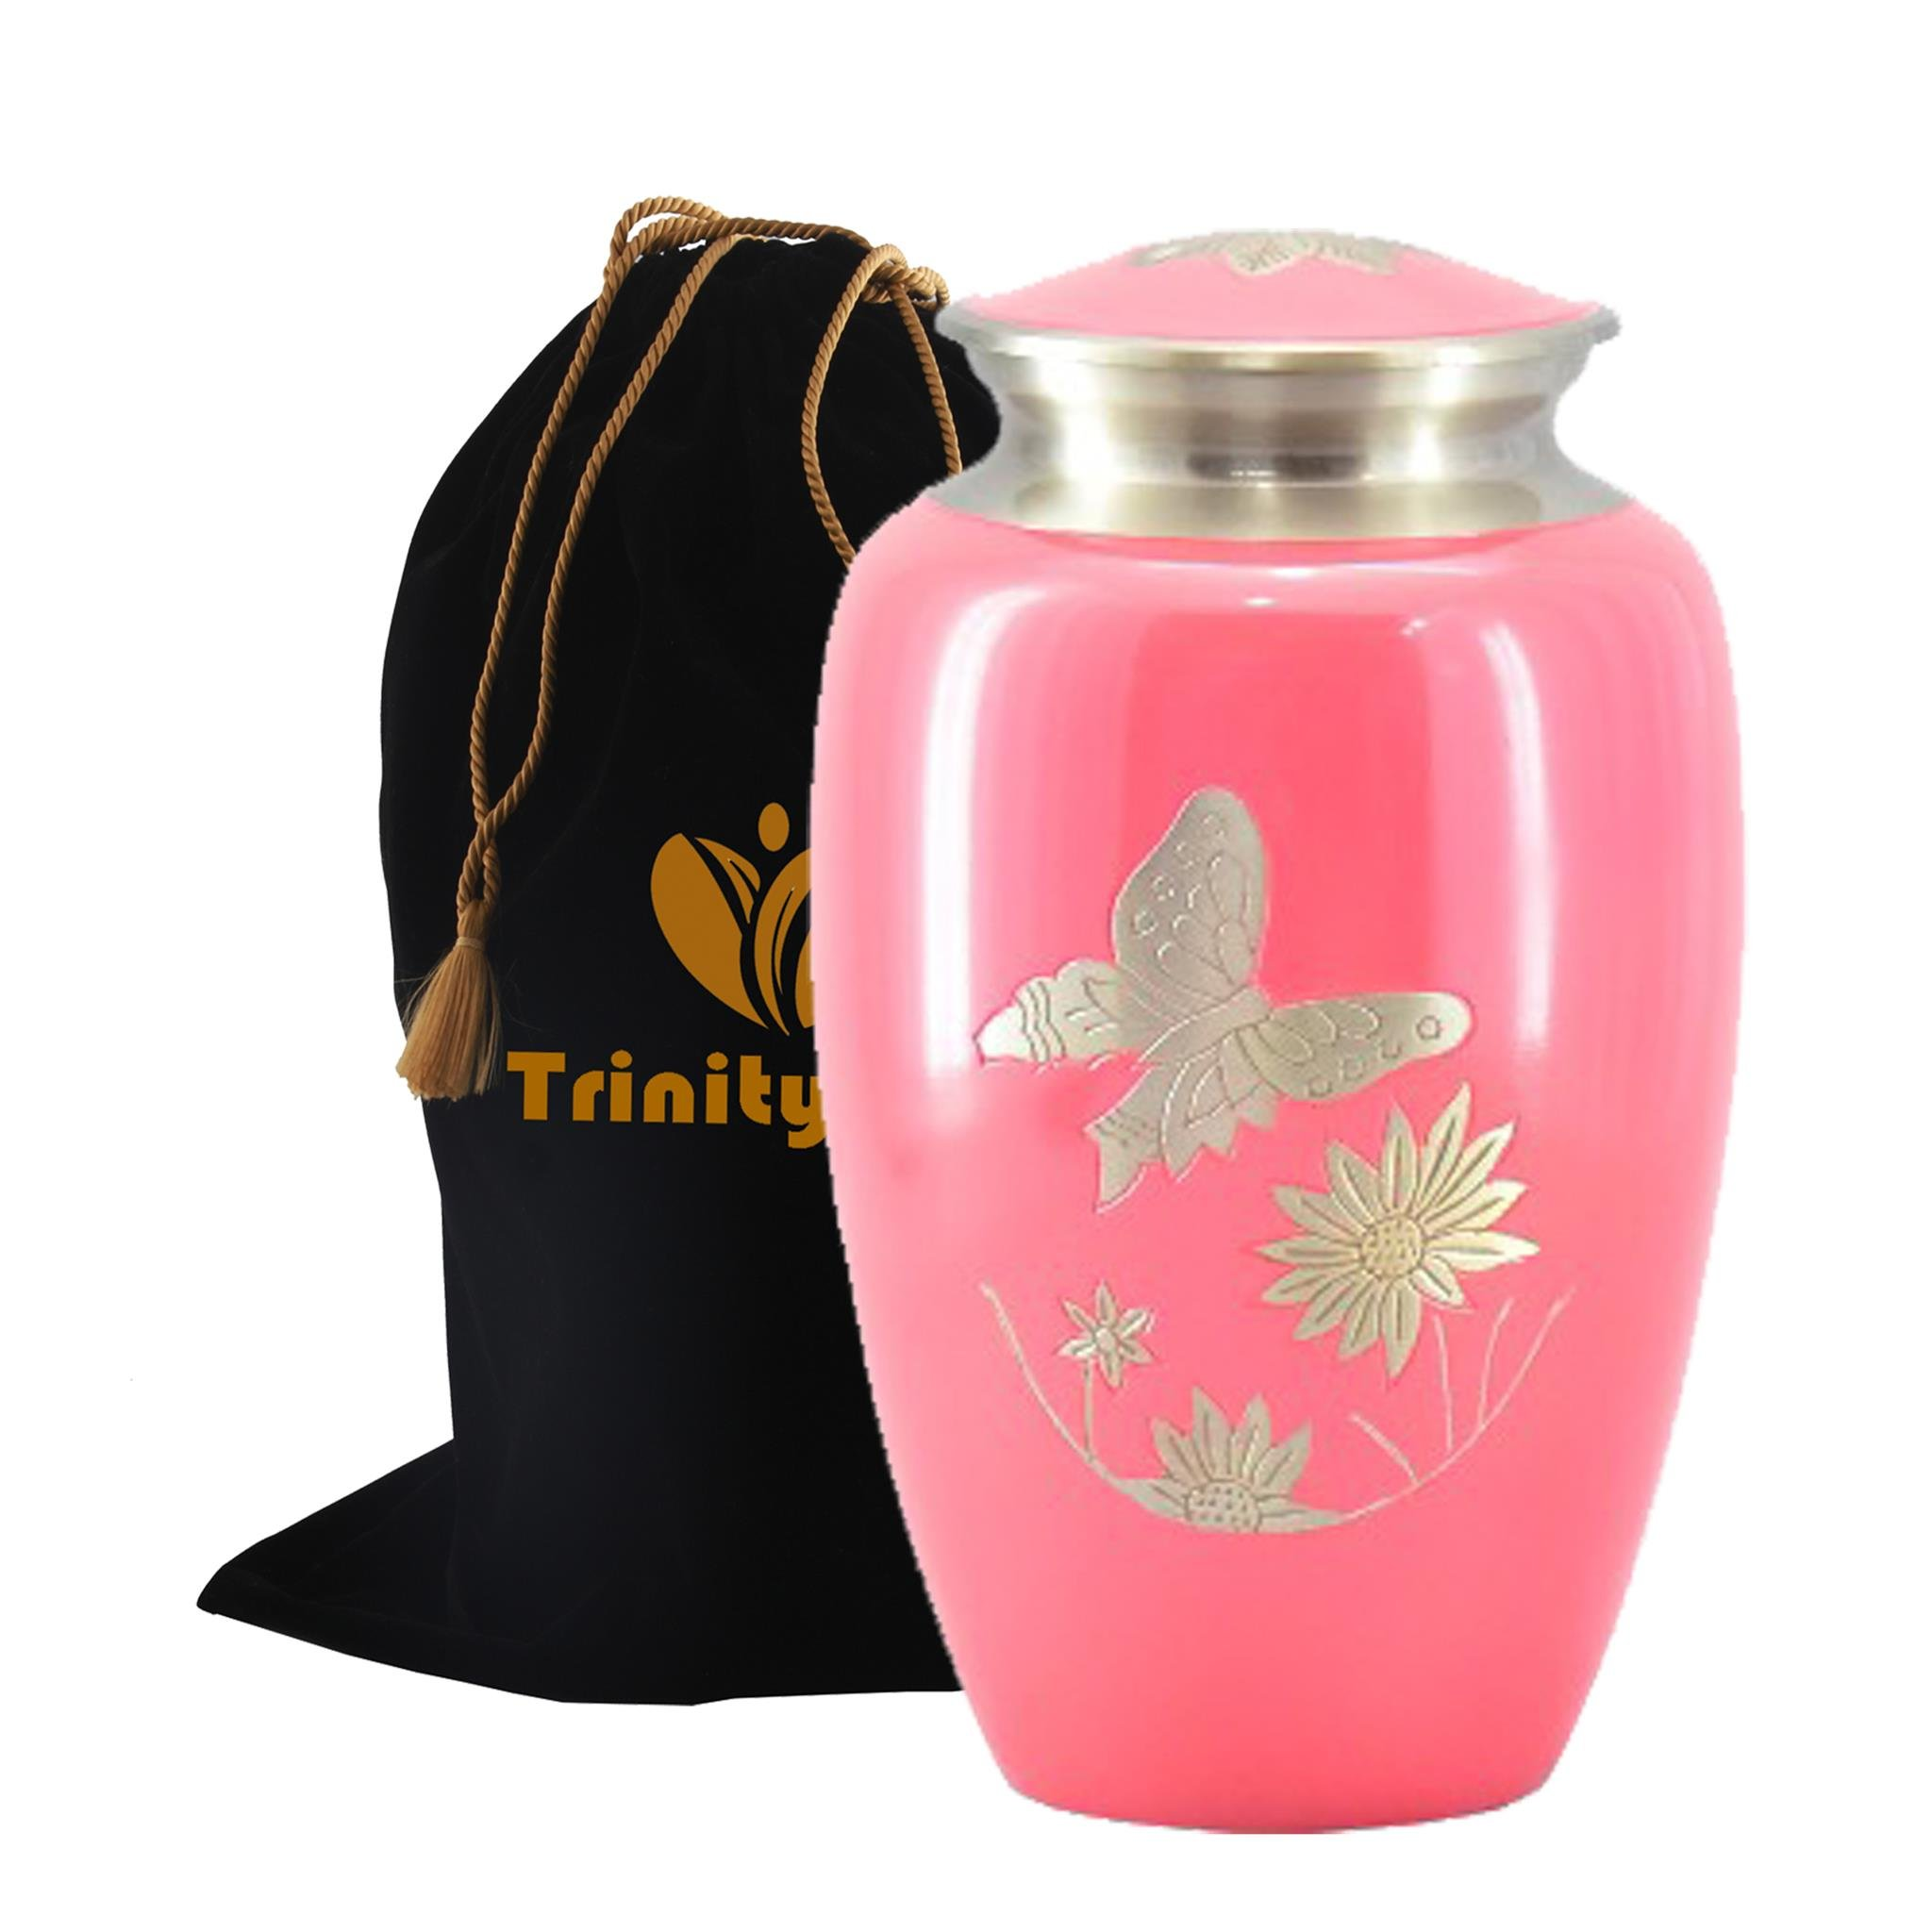 Pink Butterfly Garden Brass Cremation Urn - Beautifully Handcrafted Adult Funeral Urn - Solid Brass Funeral Urn - Affordable Urn for Human Ashes with Free Velvet Bag by Trinityurns